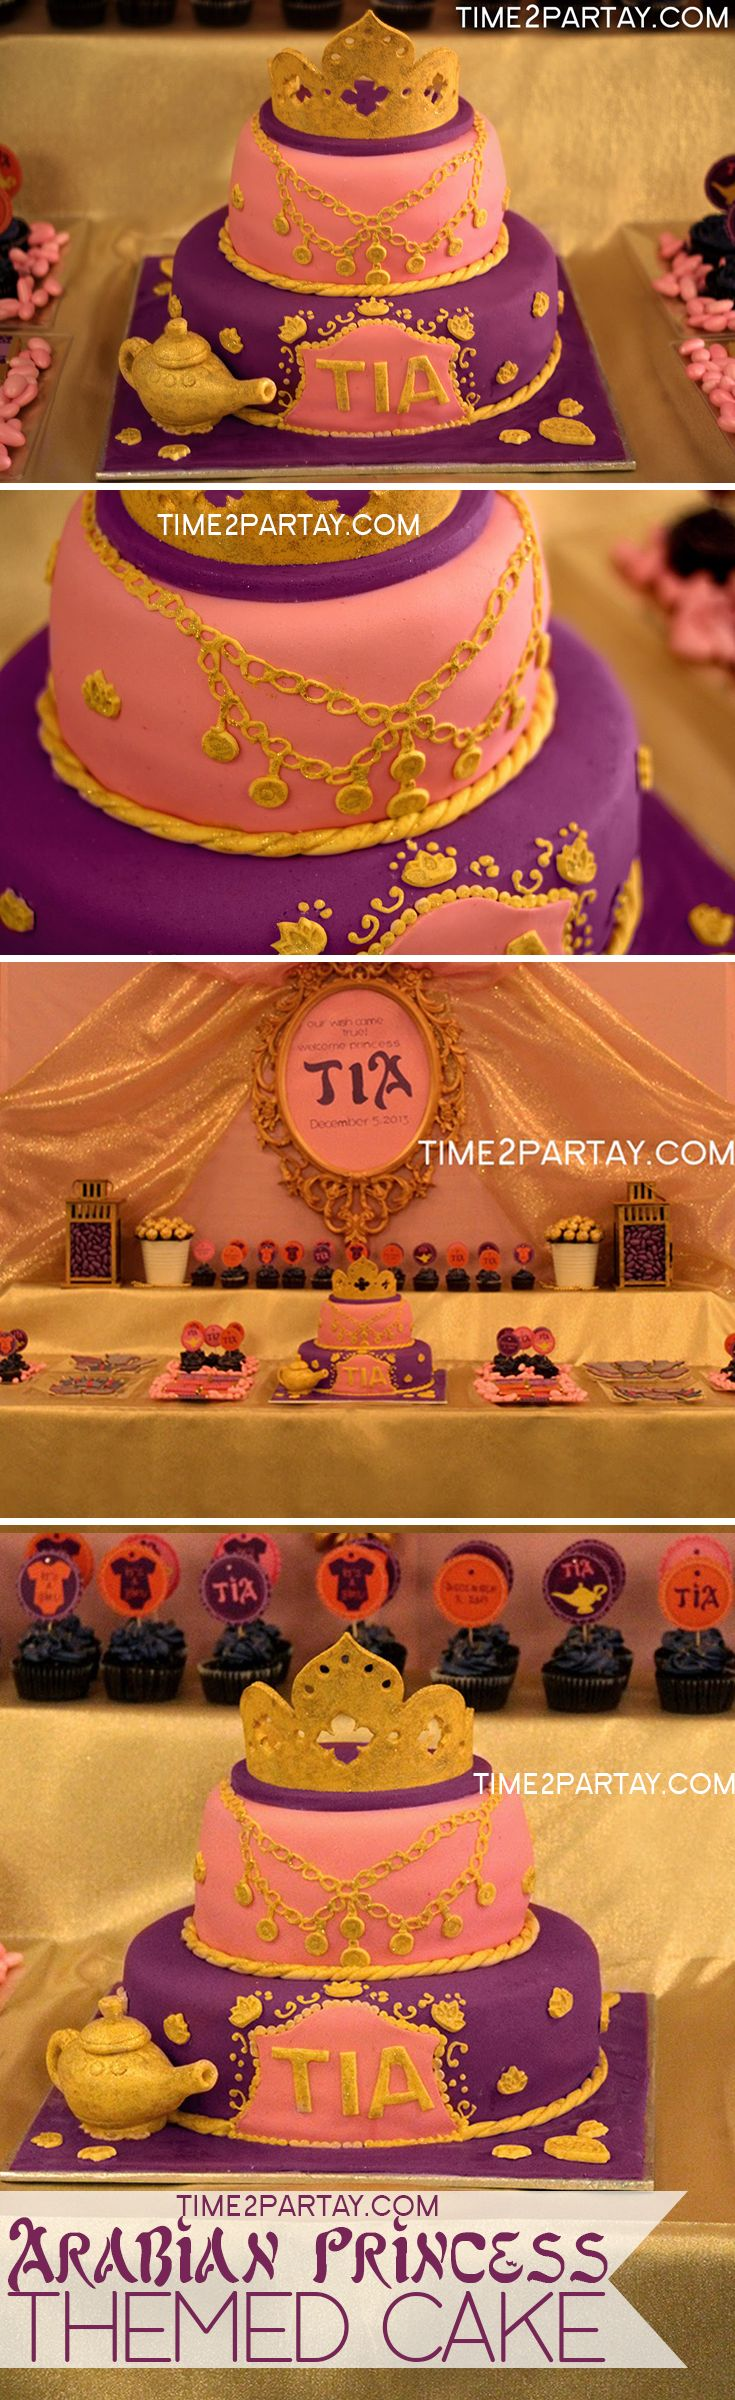 Arabian Princess Tia Has Arrived {A Welcome Baby Party}. The beautiful and very detailed cake by Sukkar Cakes. #arabian #princess #jewels #cake #sweets #purple #arabic #birthday #baby #shower #desserts